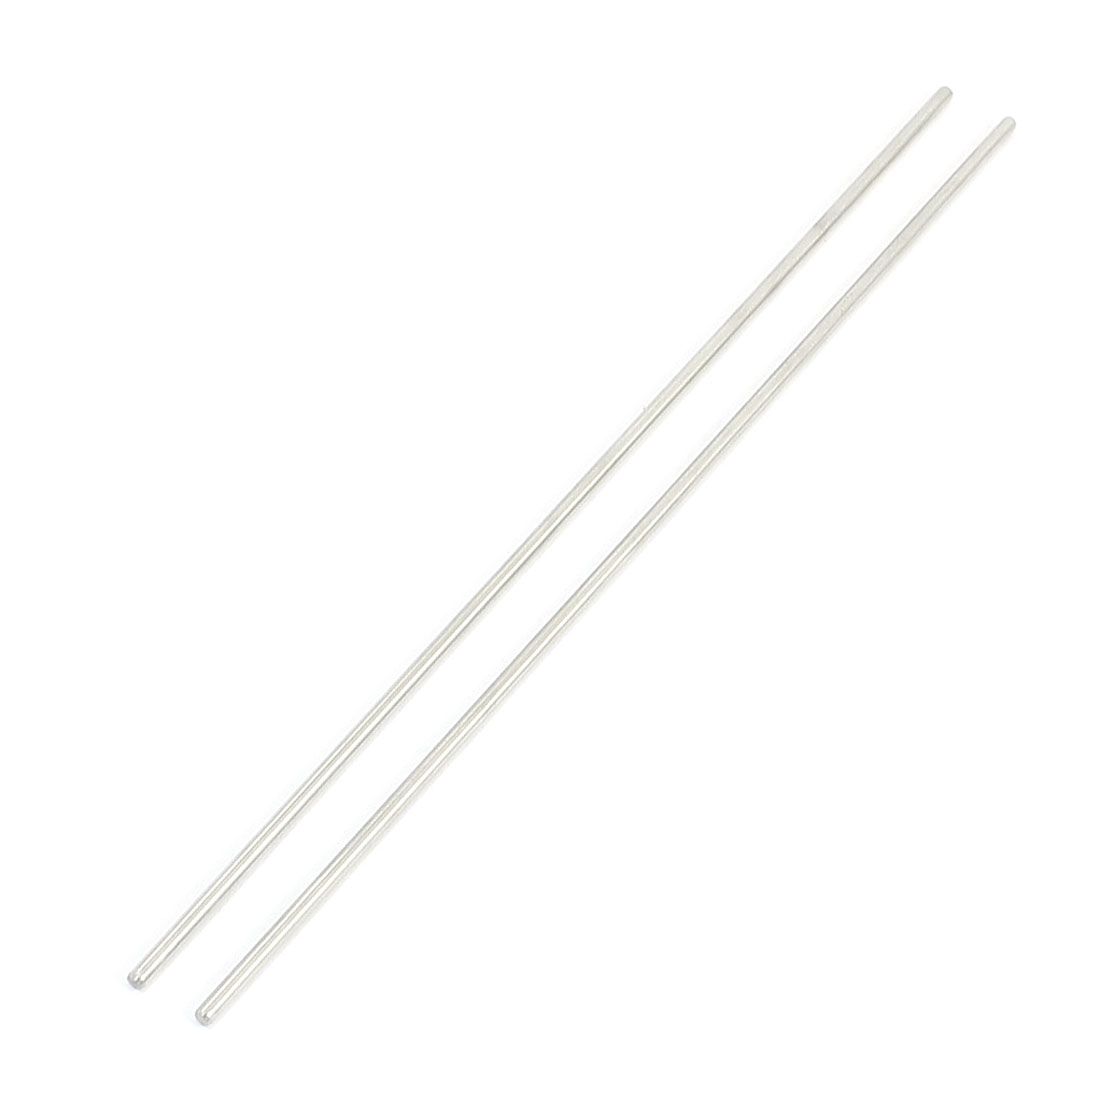 "2Pcs 2mm Diameter Stainless Steel Motion Axle Circular Round Rod Bar 5.9"" Long"